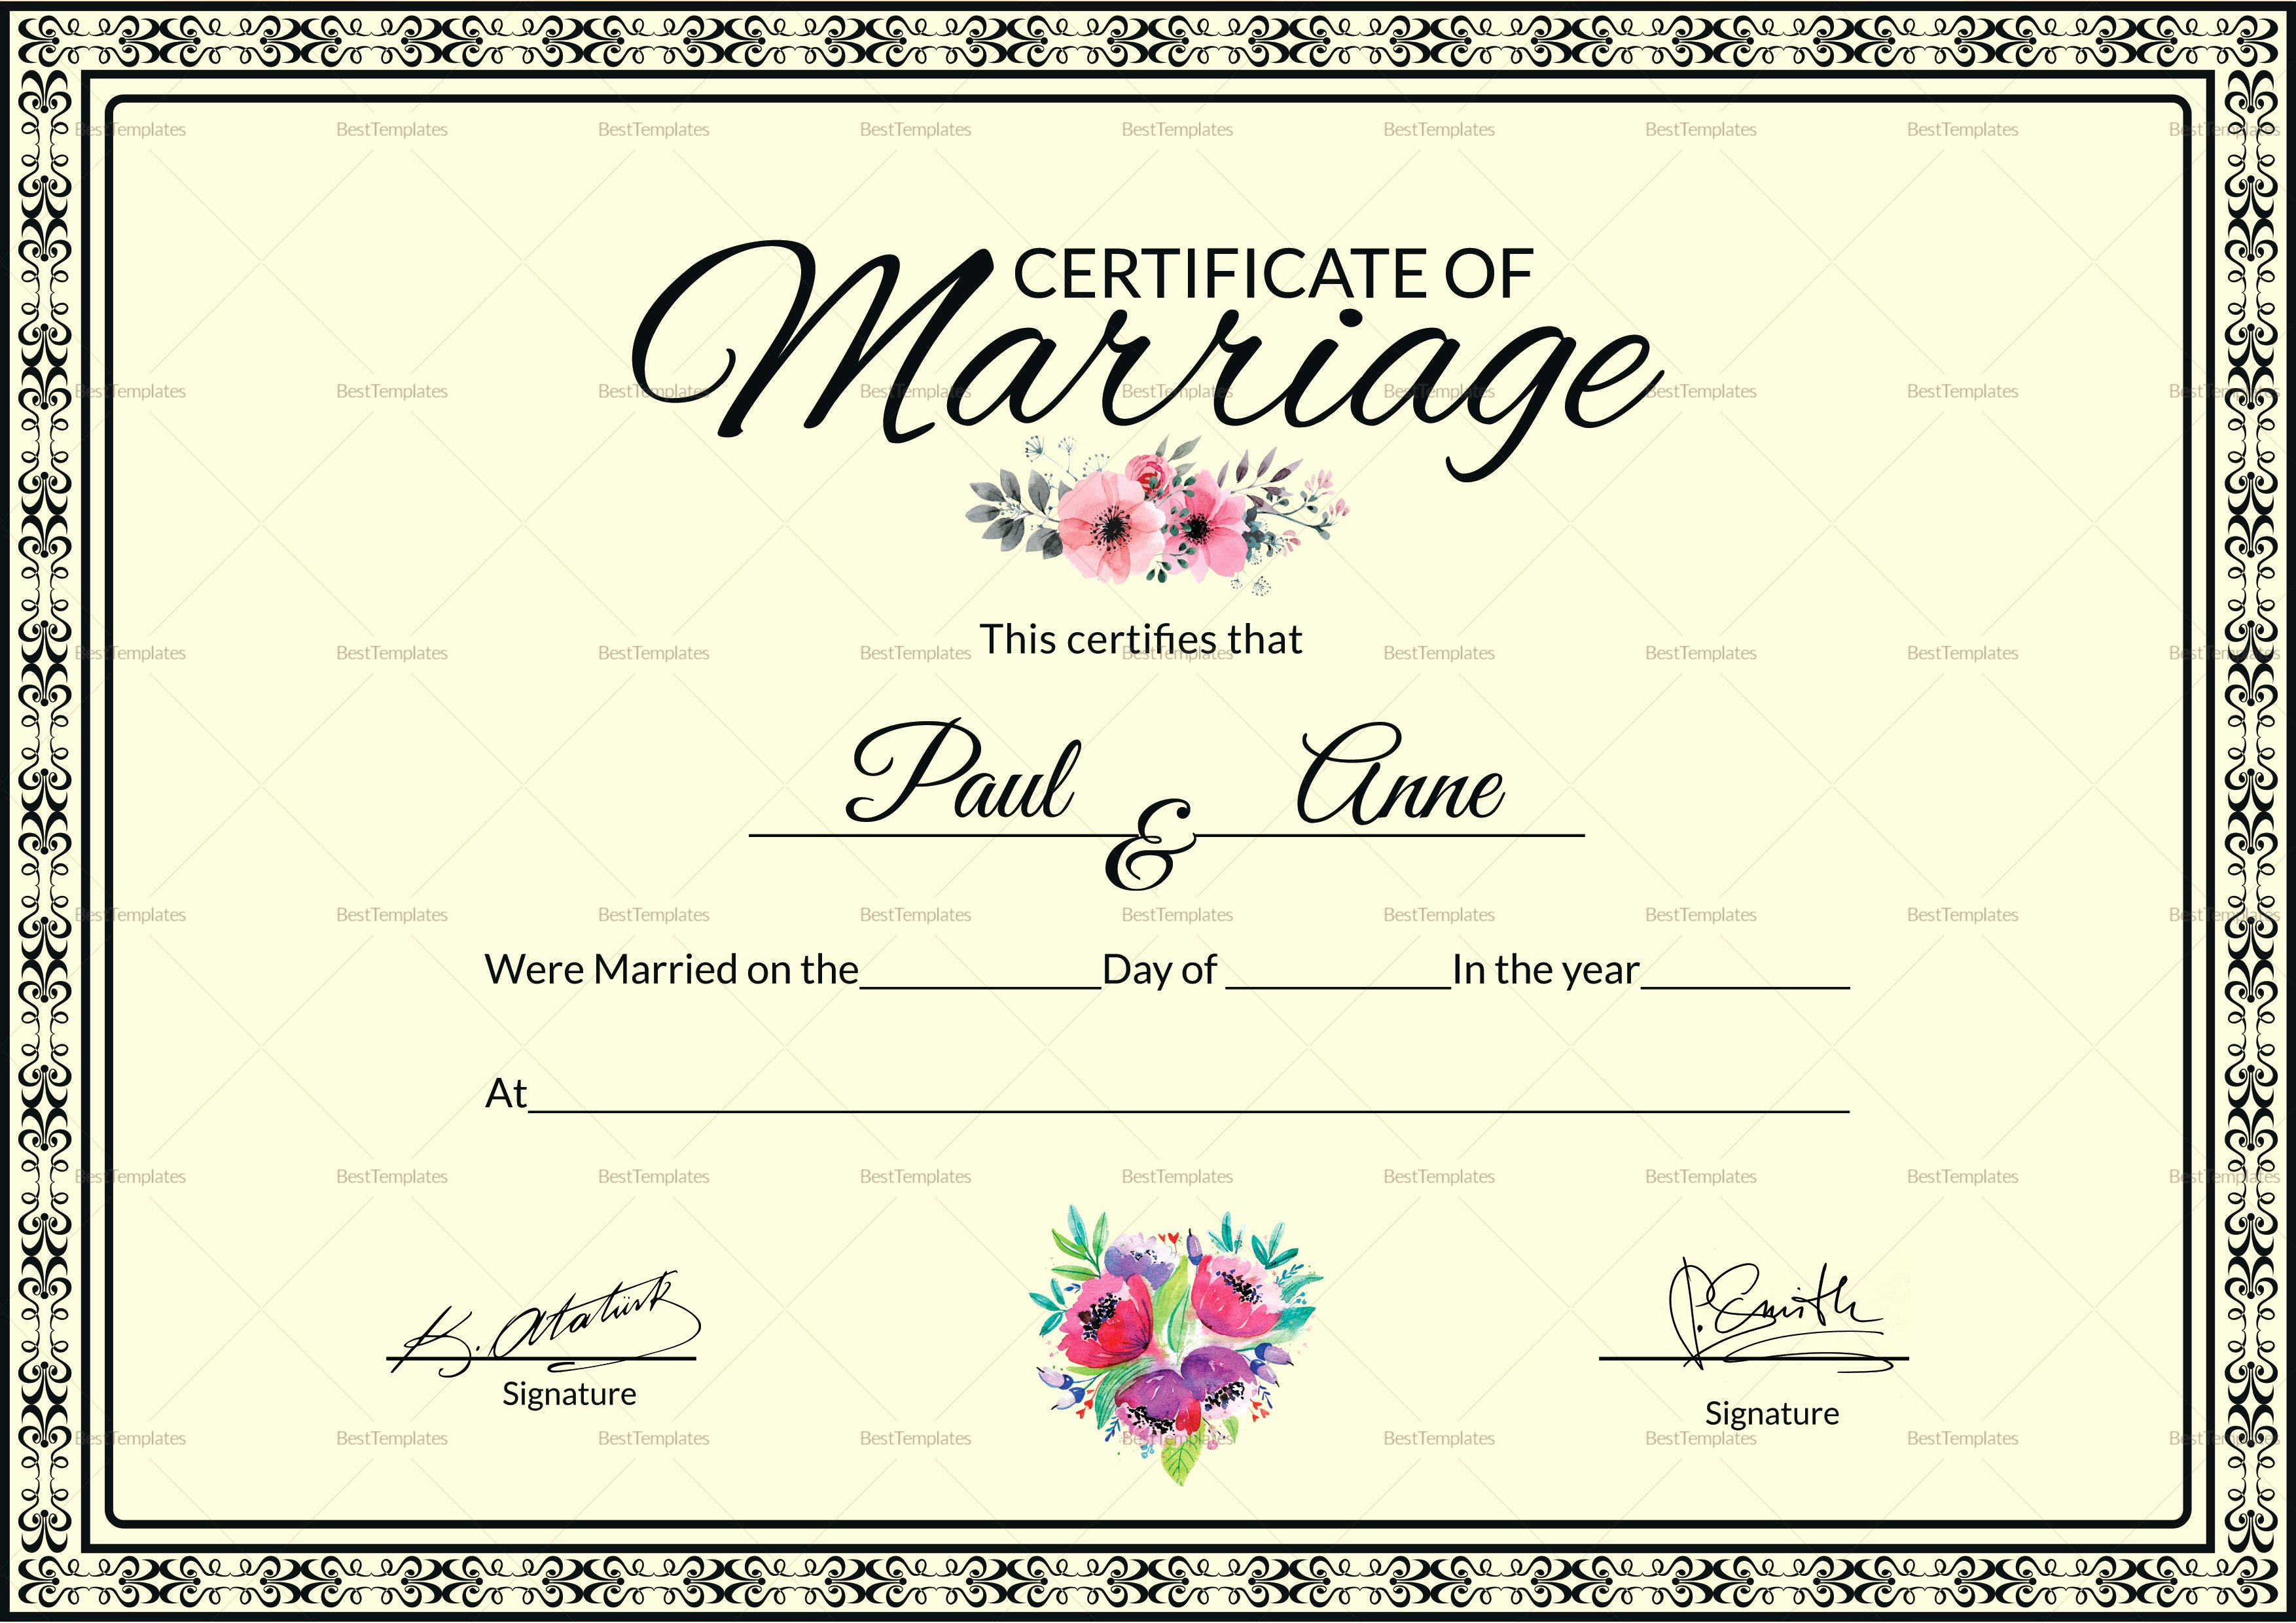 Certificate Of Marriage Template Fresh Marriage Certificate Design Template In Psd Word